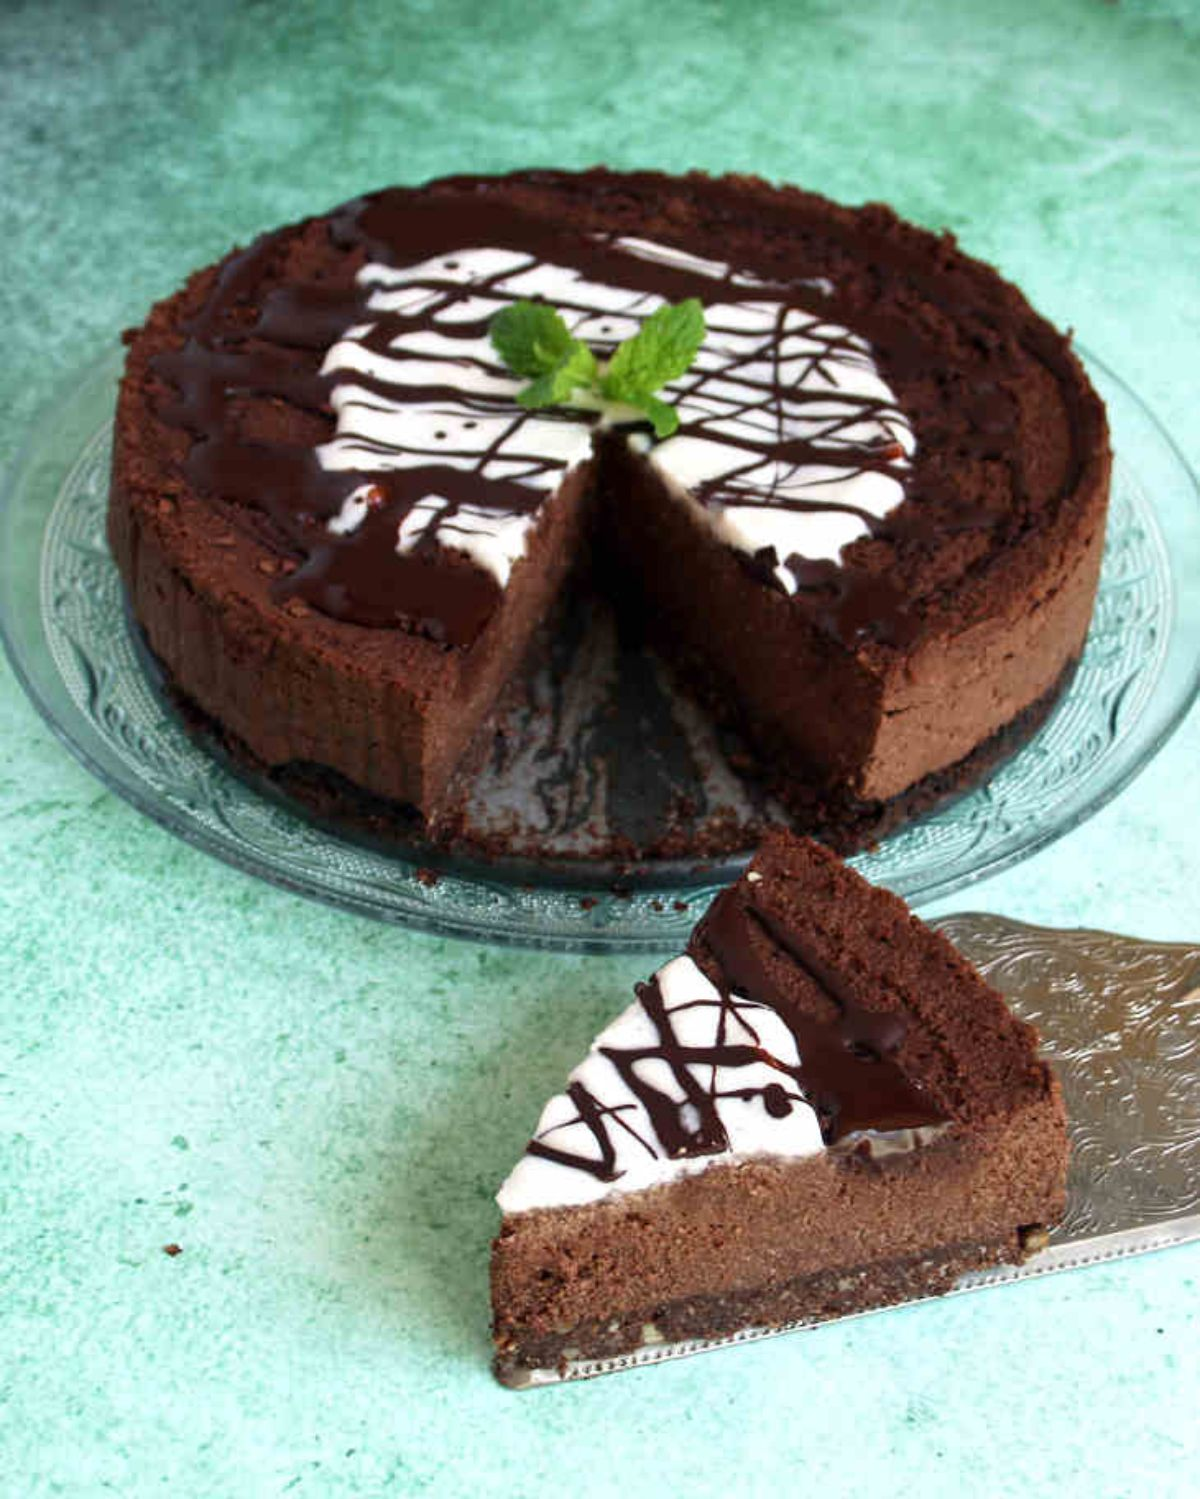 a dark chocolate cheesecake sits on a glass cake stand. It is toped with chocolate drizzle and some mint leaves. On a cake slice is the msising slice of cake